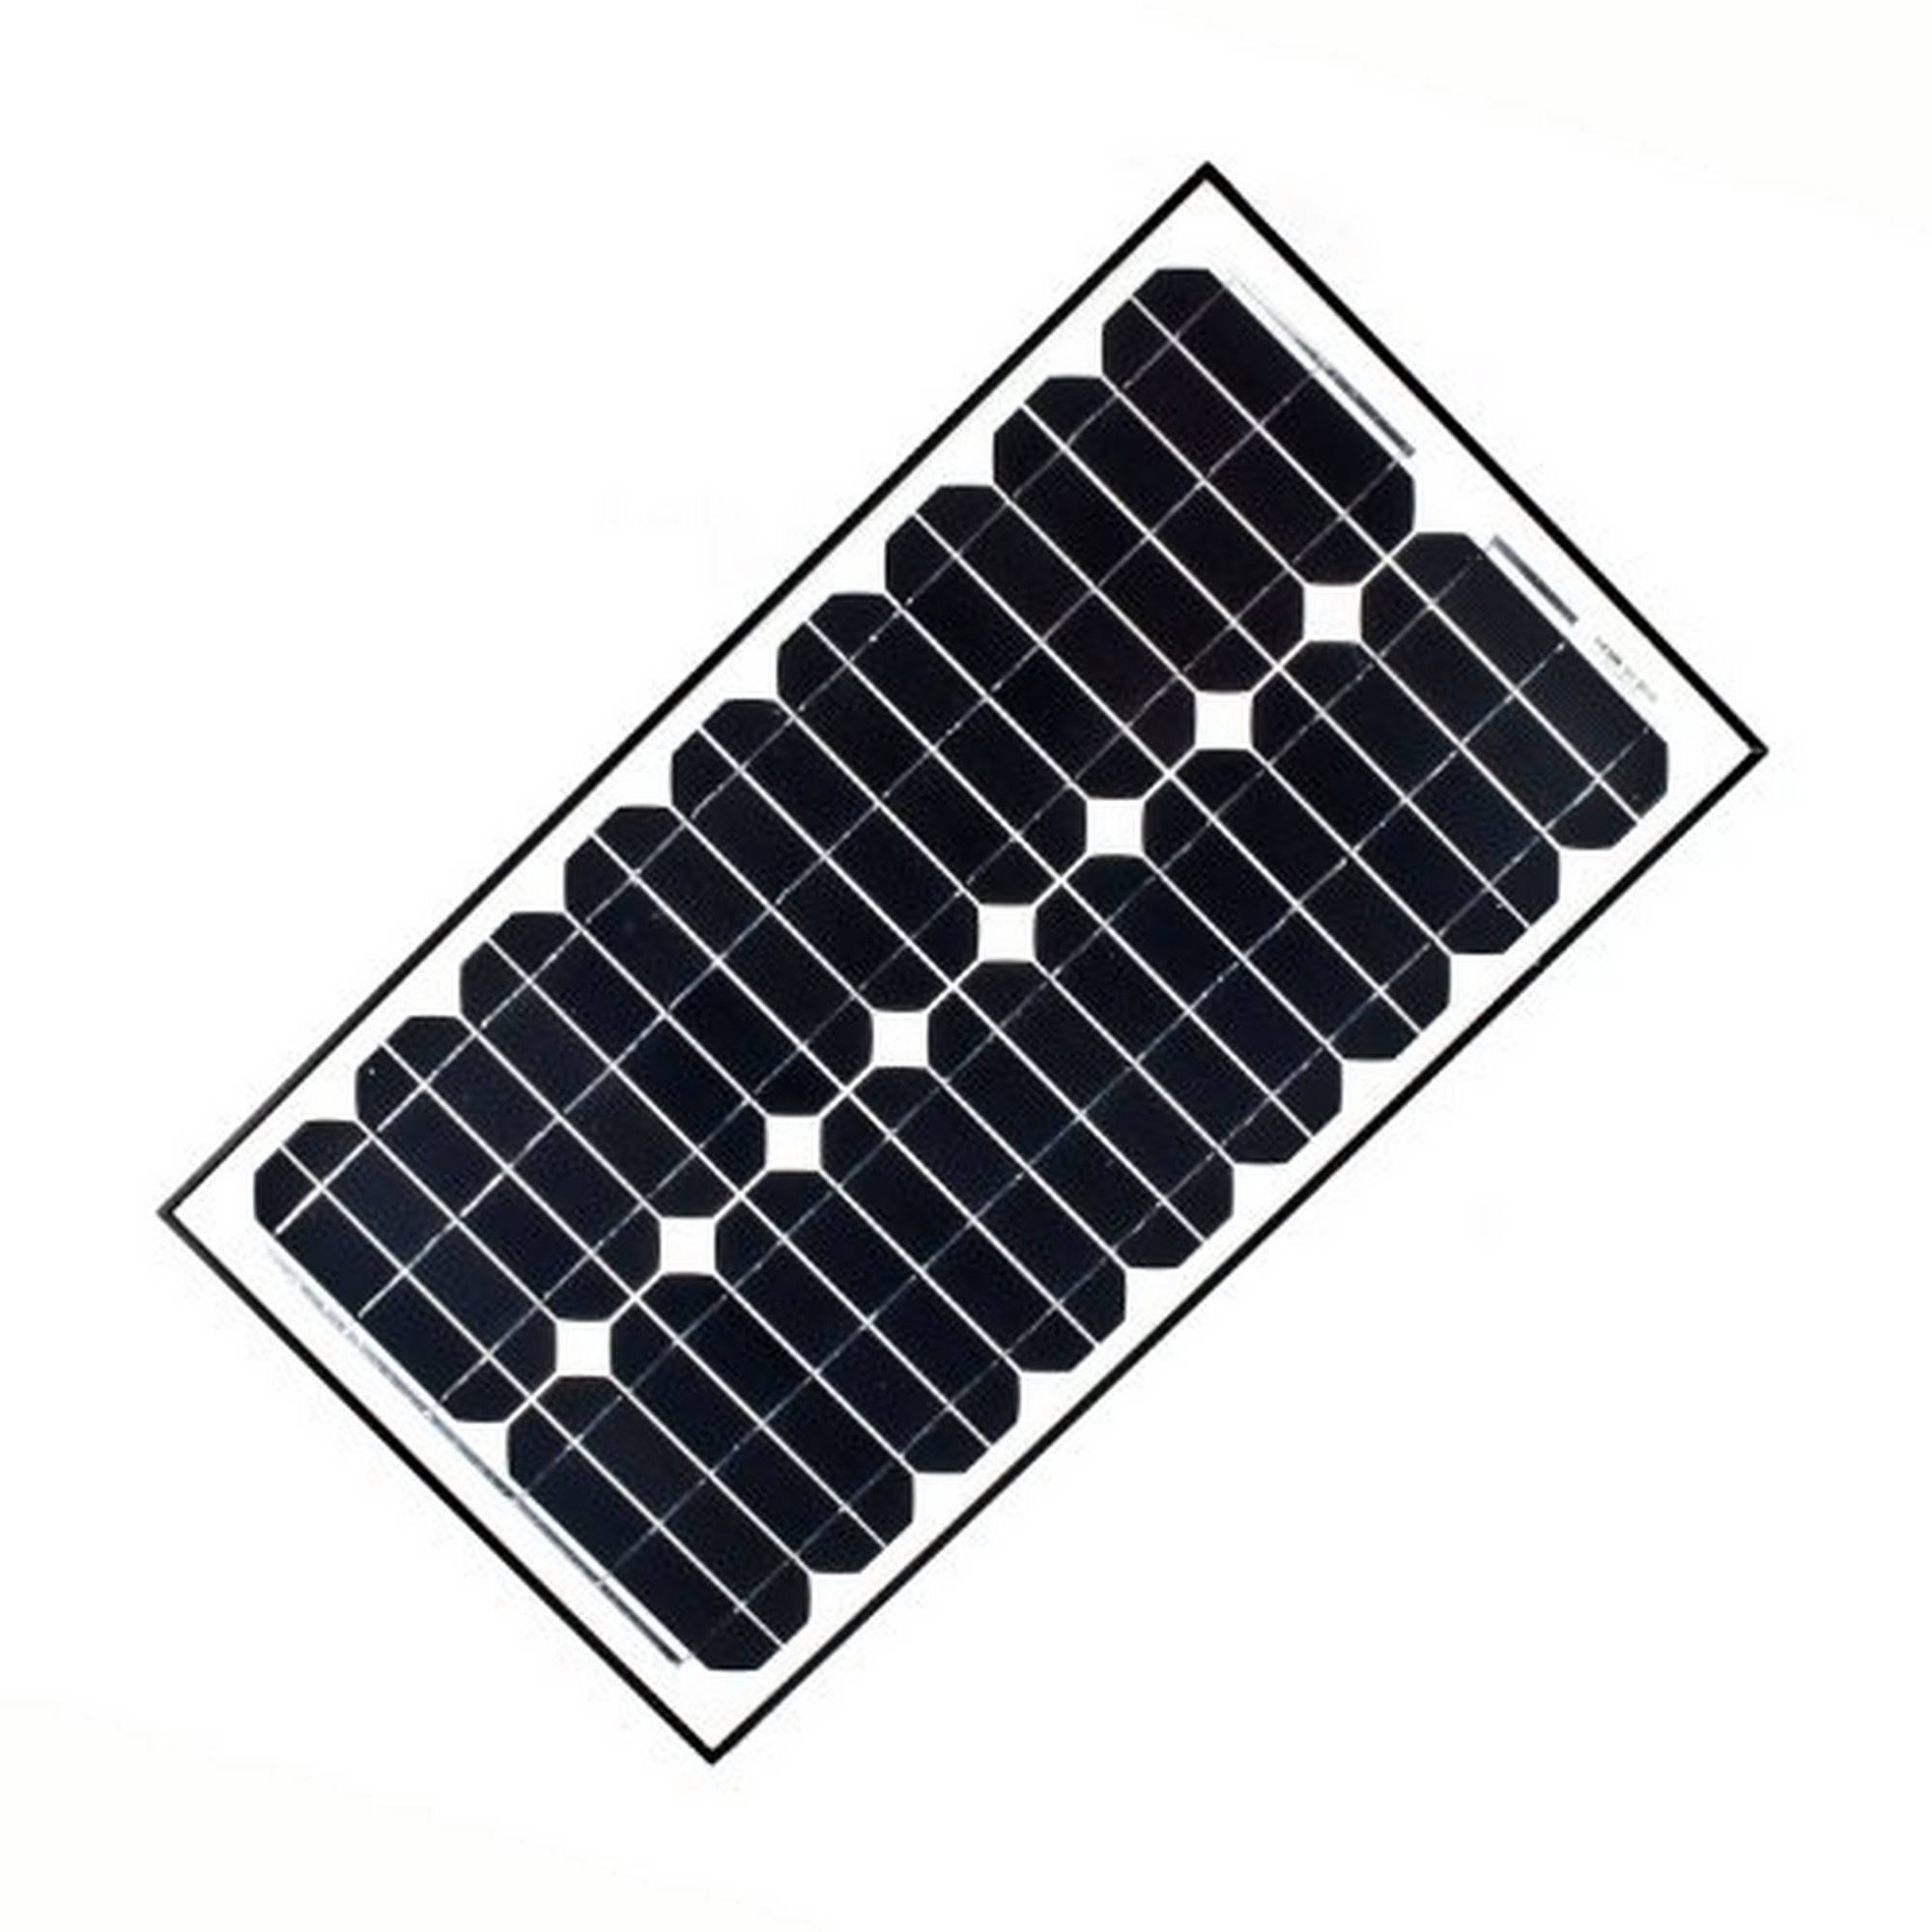 ALEKO Solar Panel Monocrystalline 30W for any DC 12V Application (gate opener, portable charging system, etc.)